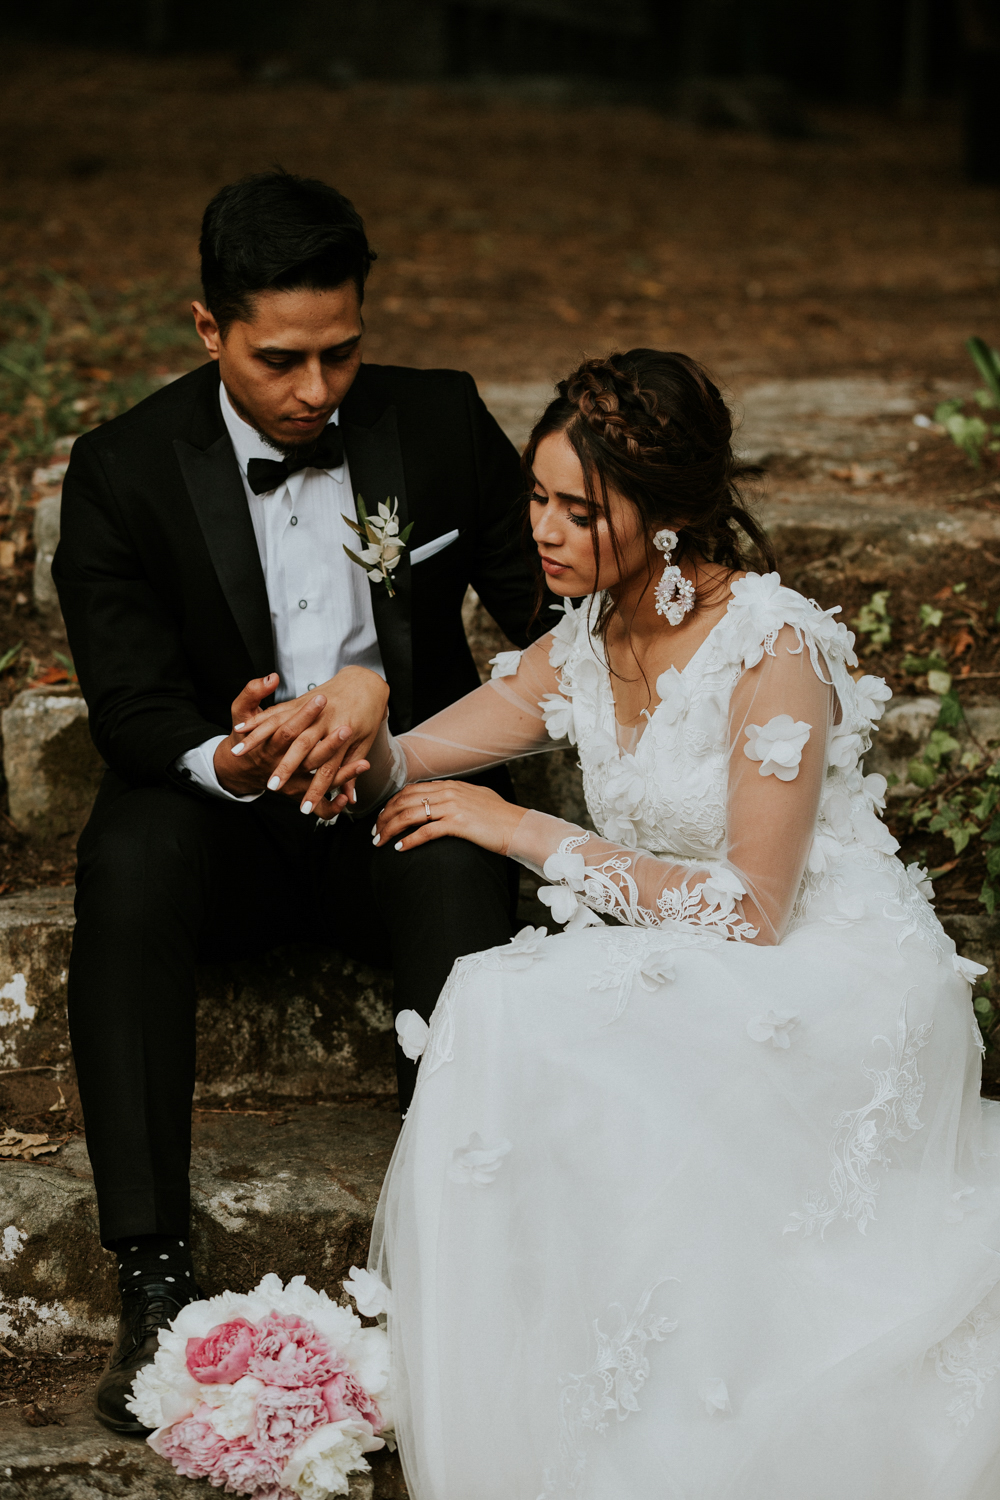 Forest Wedding Cape Town - Bianca Asher Photography-65.jpg